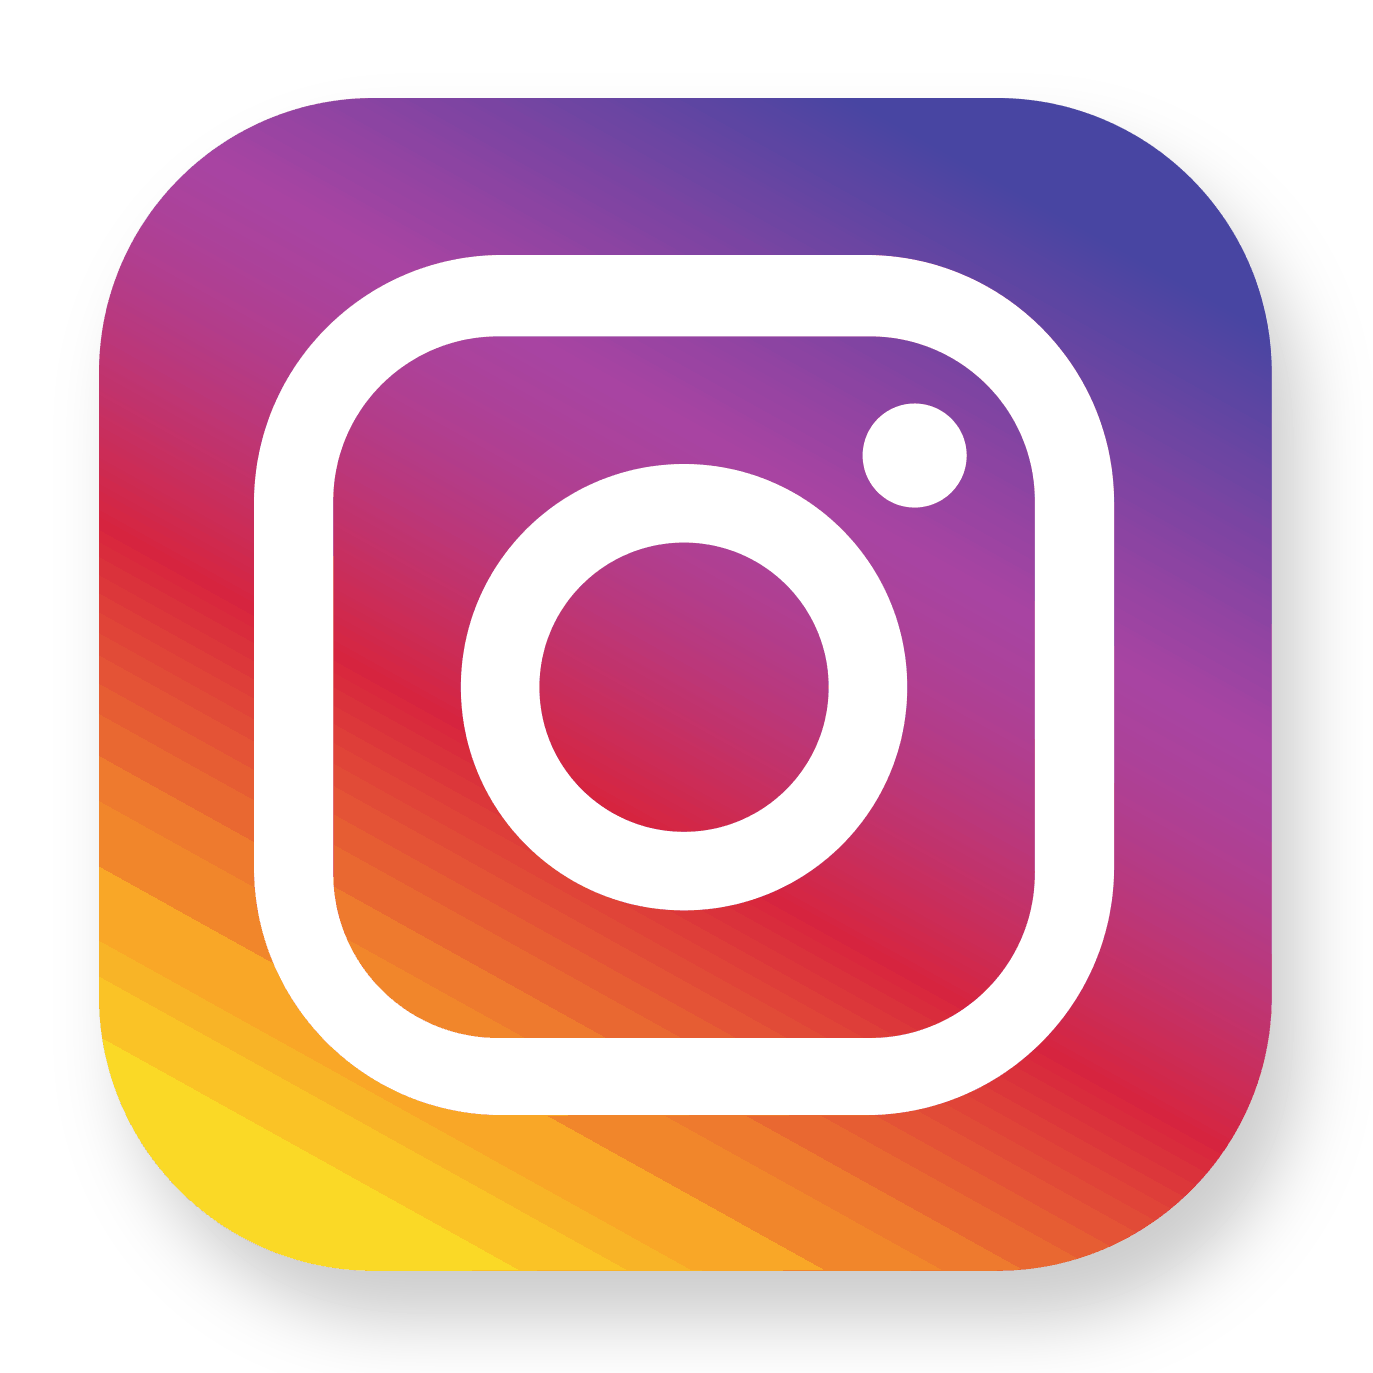 Download Instagram Logo Vector Directly, no registration